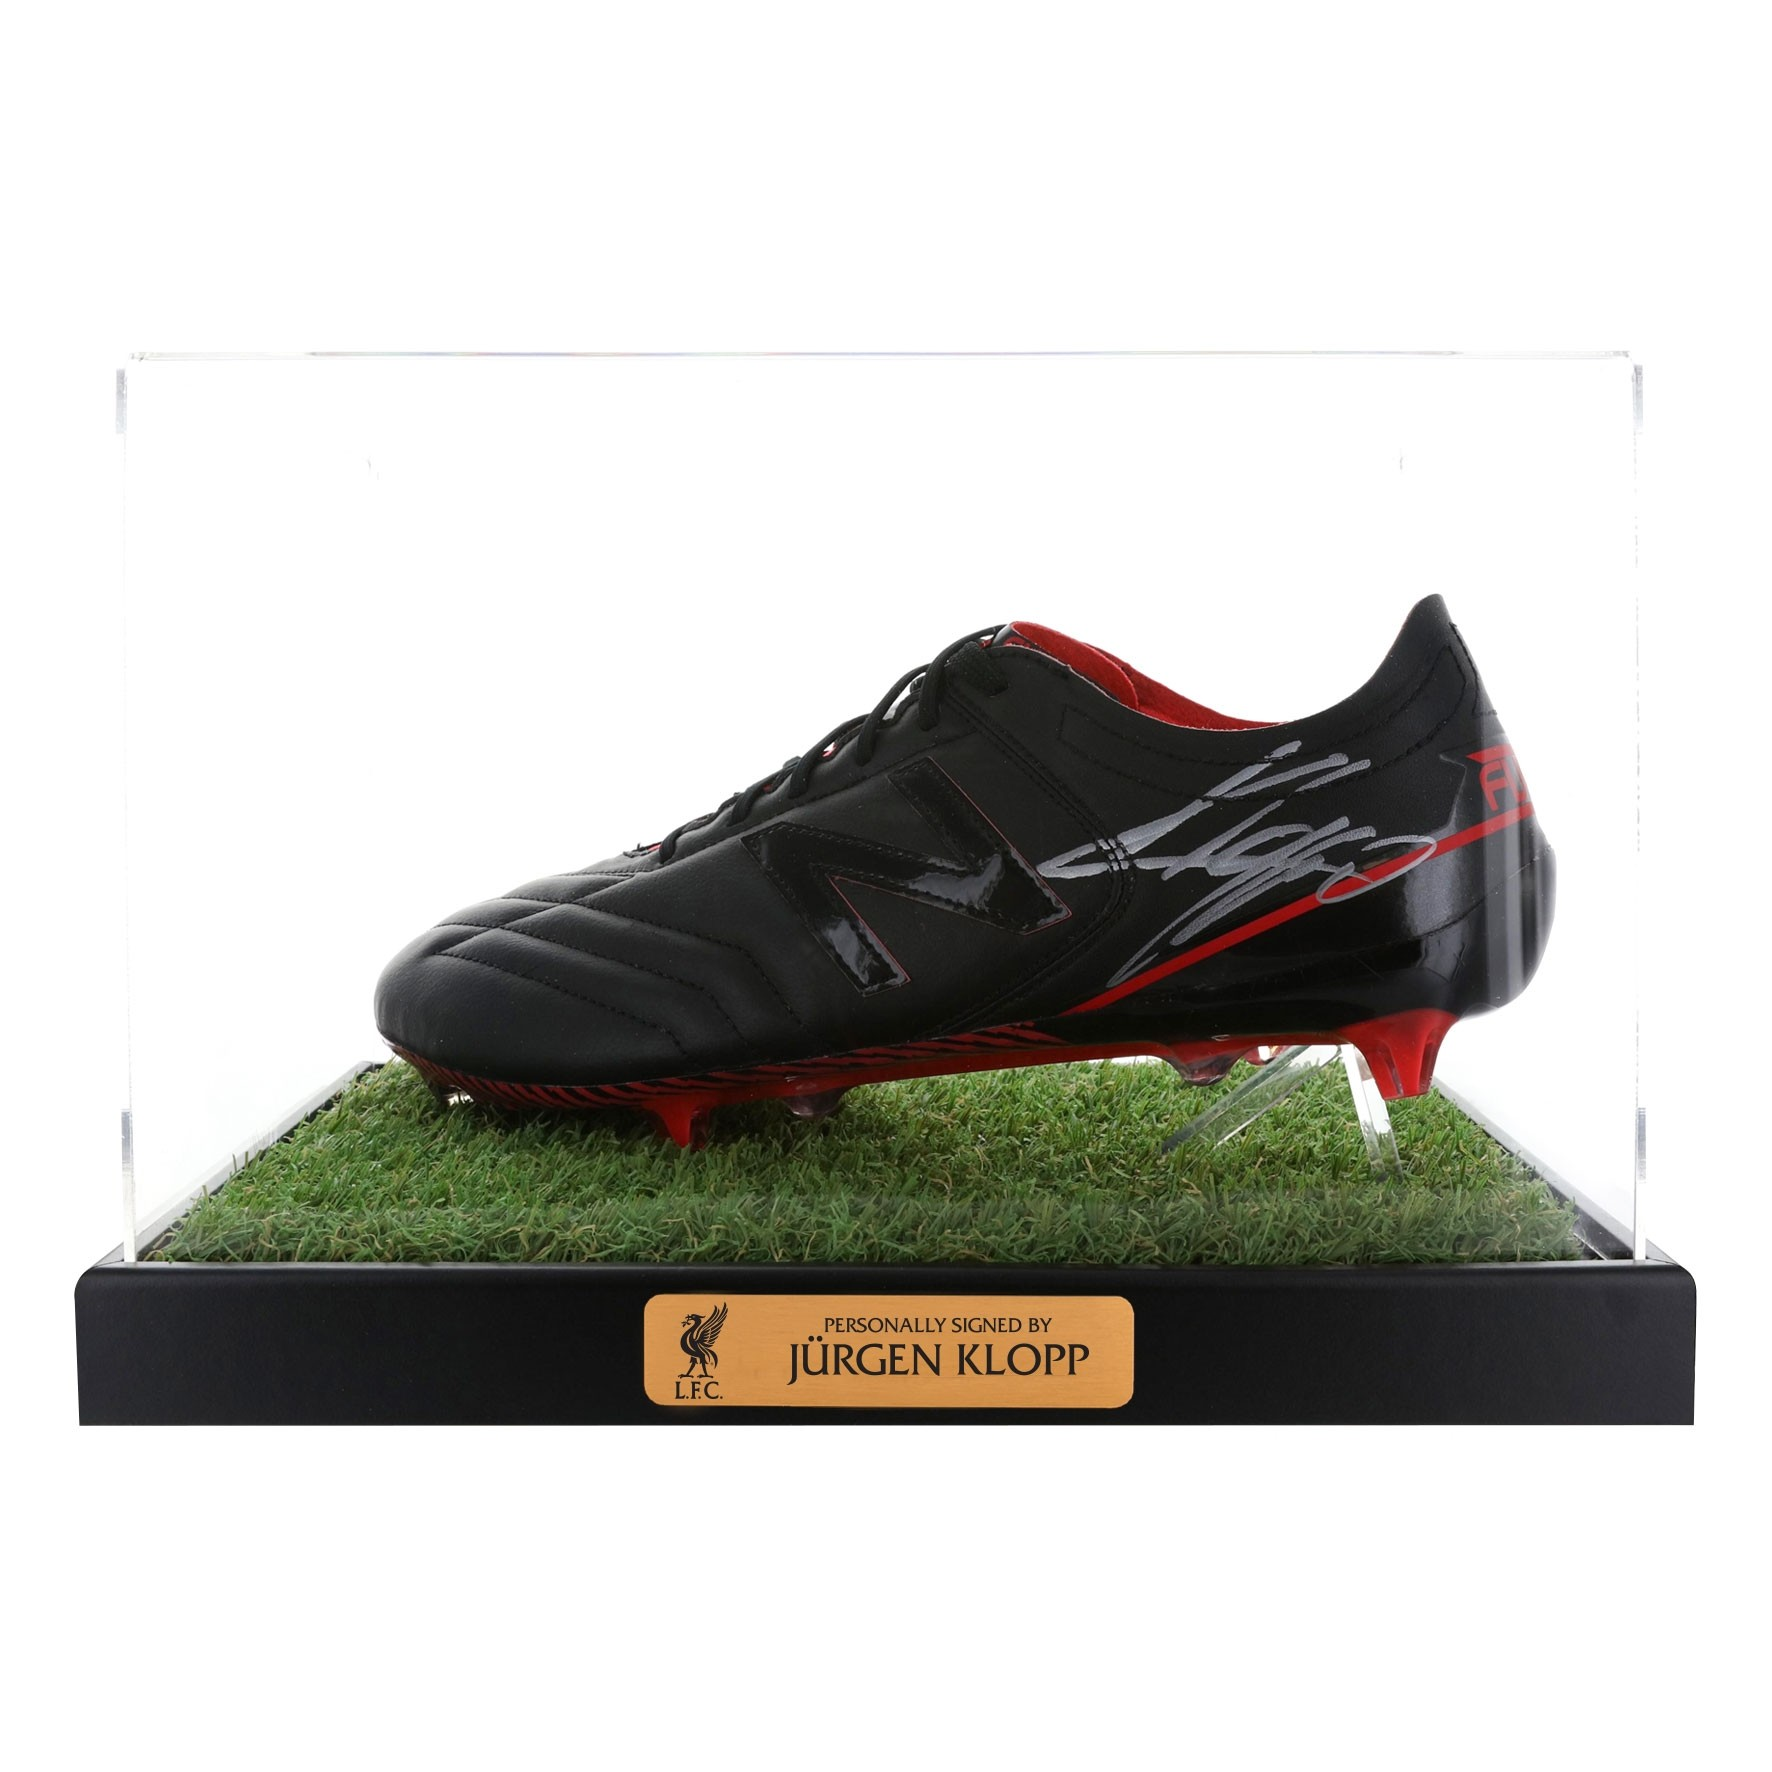 LFC Signed Klopp Boot in Case